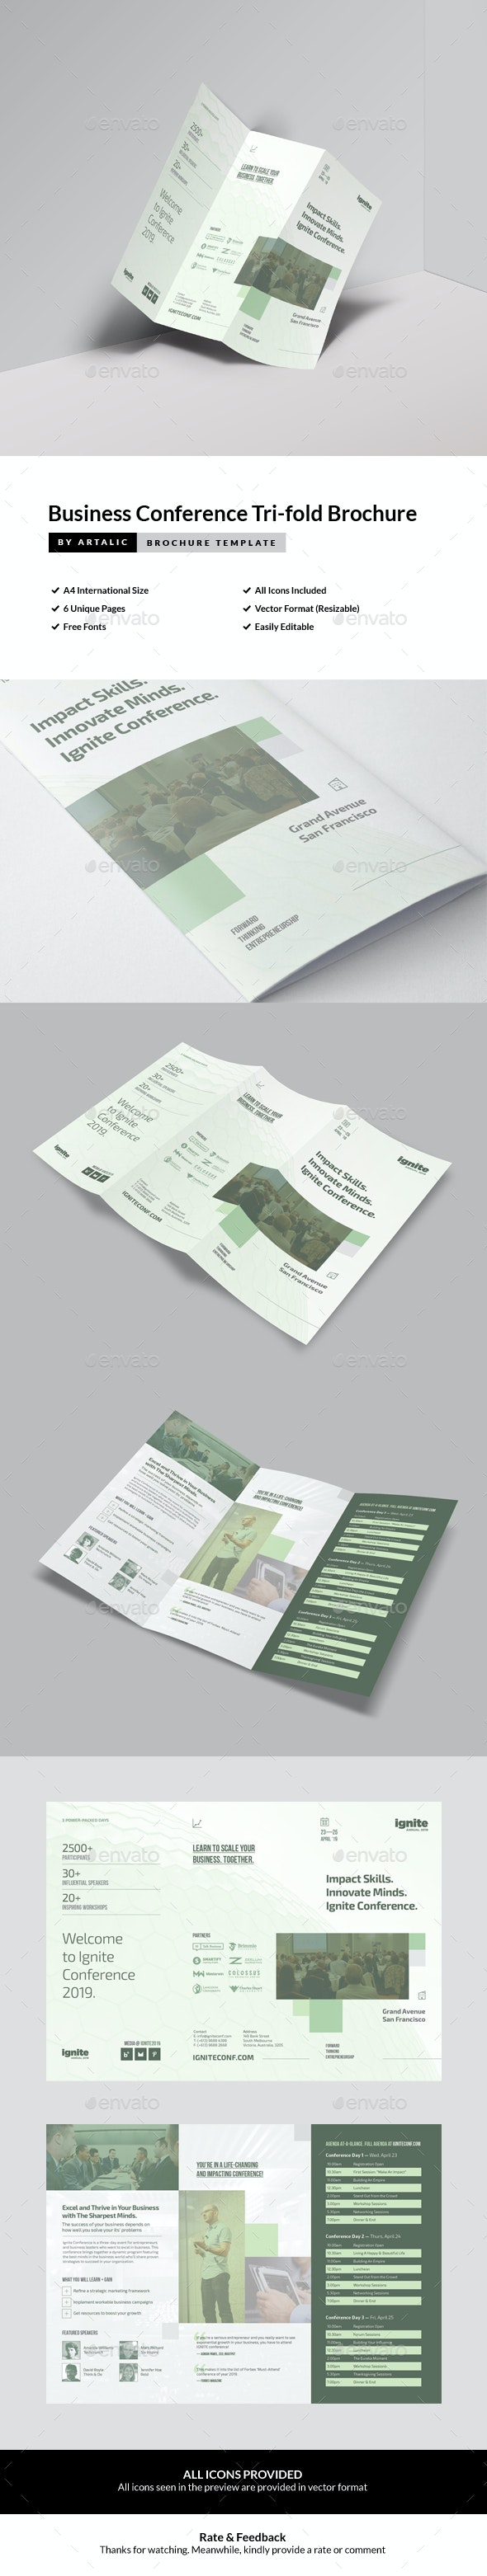 Business Conference Tri-fold Brochure - Brochures Print Templates